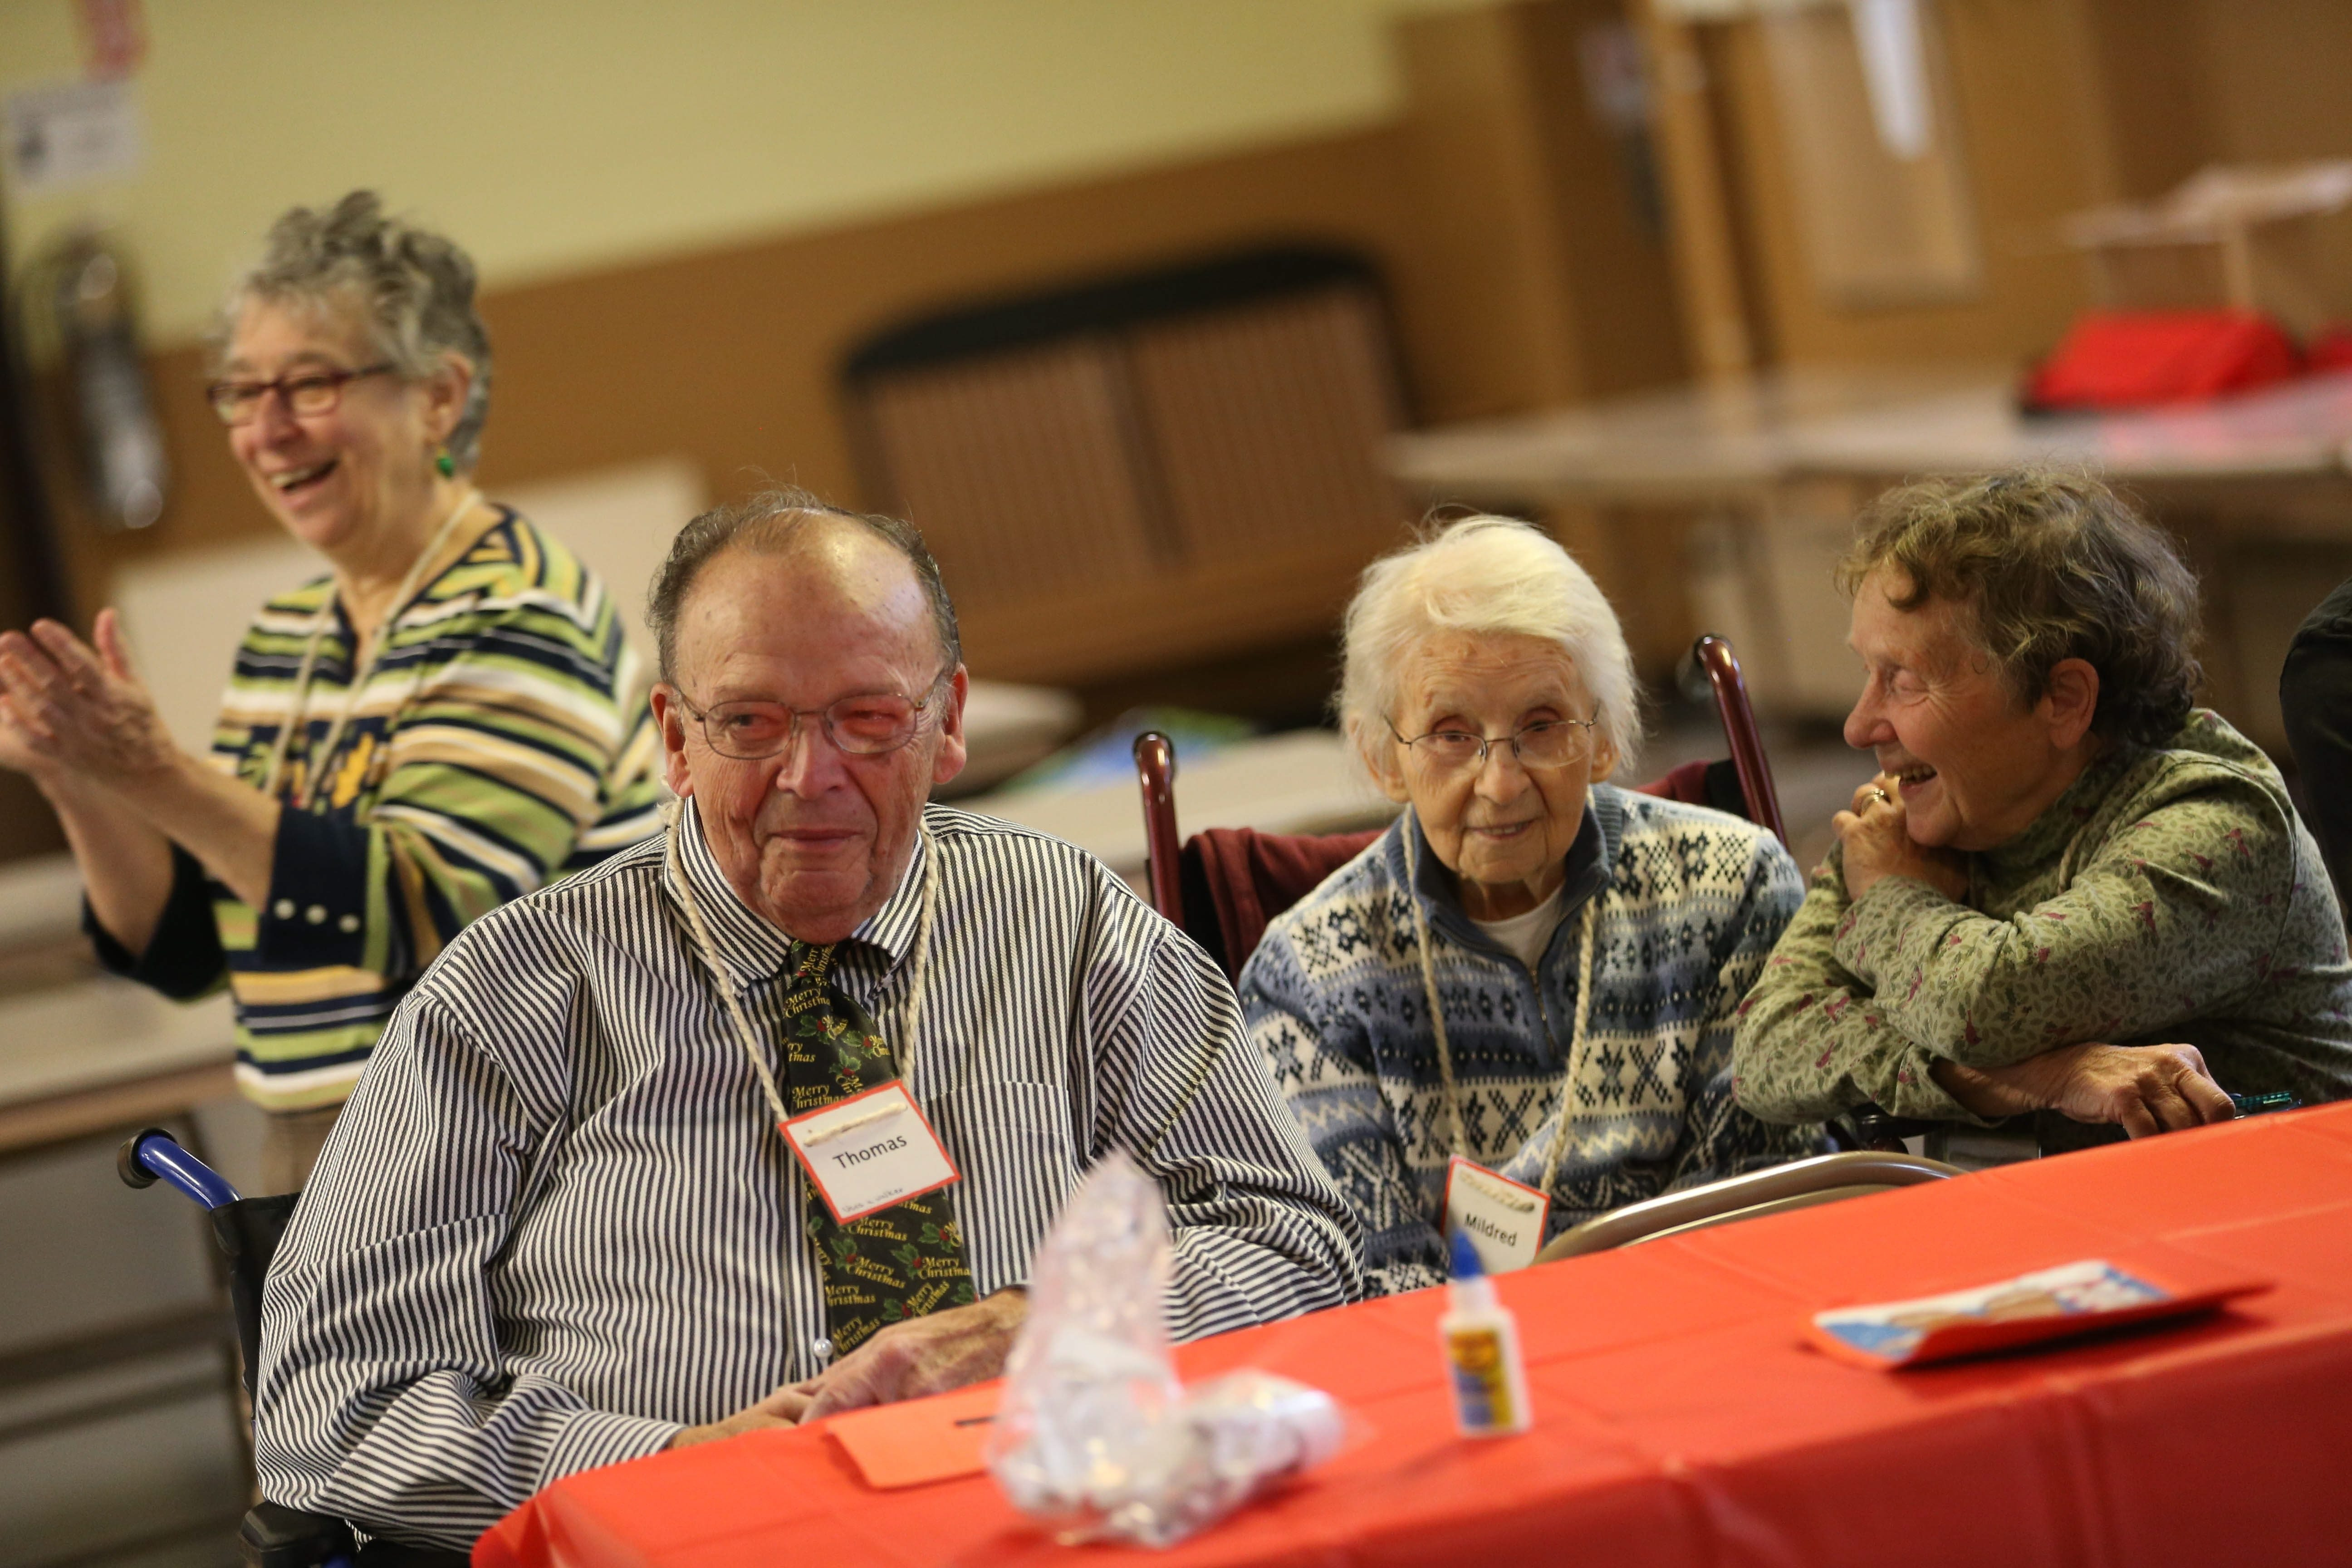 Trinity Old Lutheran Church on Sheridan Drive in Amherst provides a respite one day a month for caregivers giving them time while trained volunteers care for their loved ones. The group  plays the word game, hangman, Wednesday, Dec. 2, 2015.  Playing from left are Thomas Spankle, Mildred Toner and volunteer Elaine Geschwender. (Sharon Cantillon/Buffalo News)